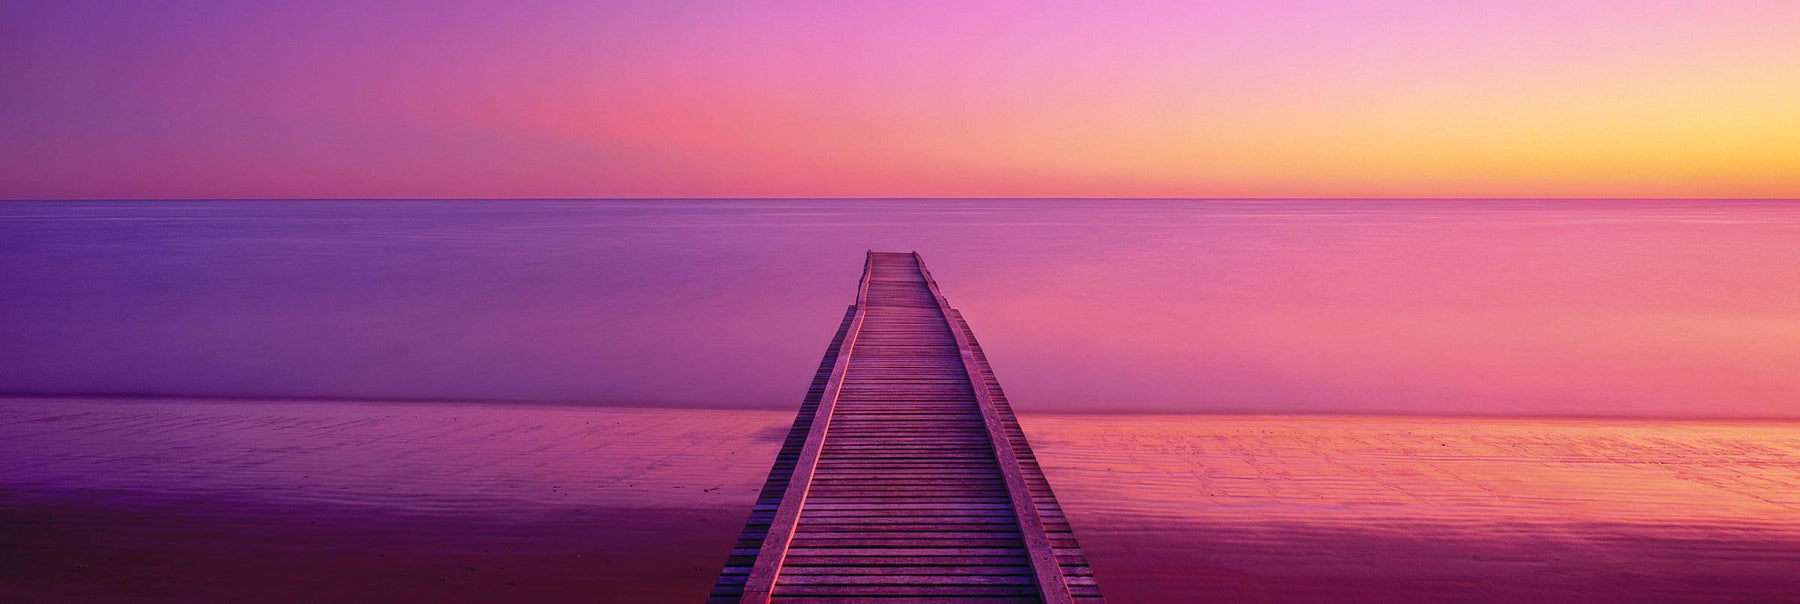 Timber Jetty stretching out into the ocean at Hervey Bay Australia during a pink sunrise